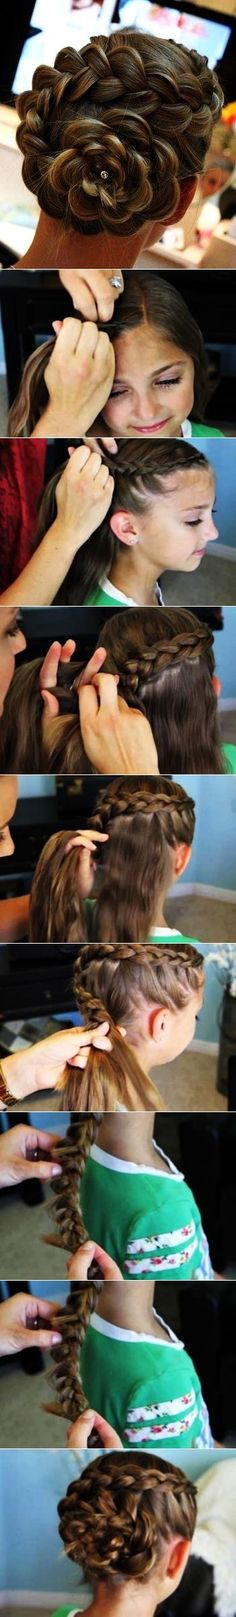 The Dutch Flower Braid. It is beautiful and looks complex, but it is remarkably…